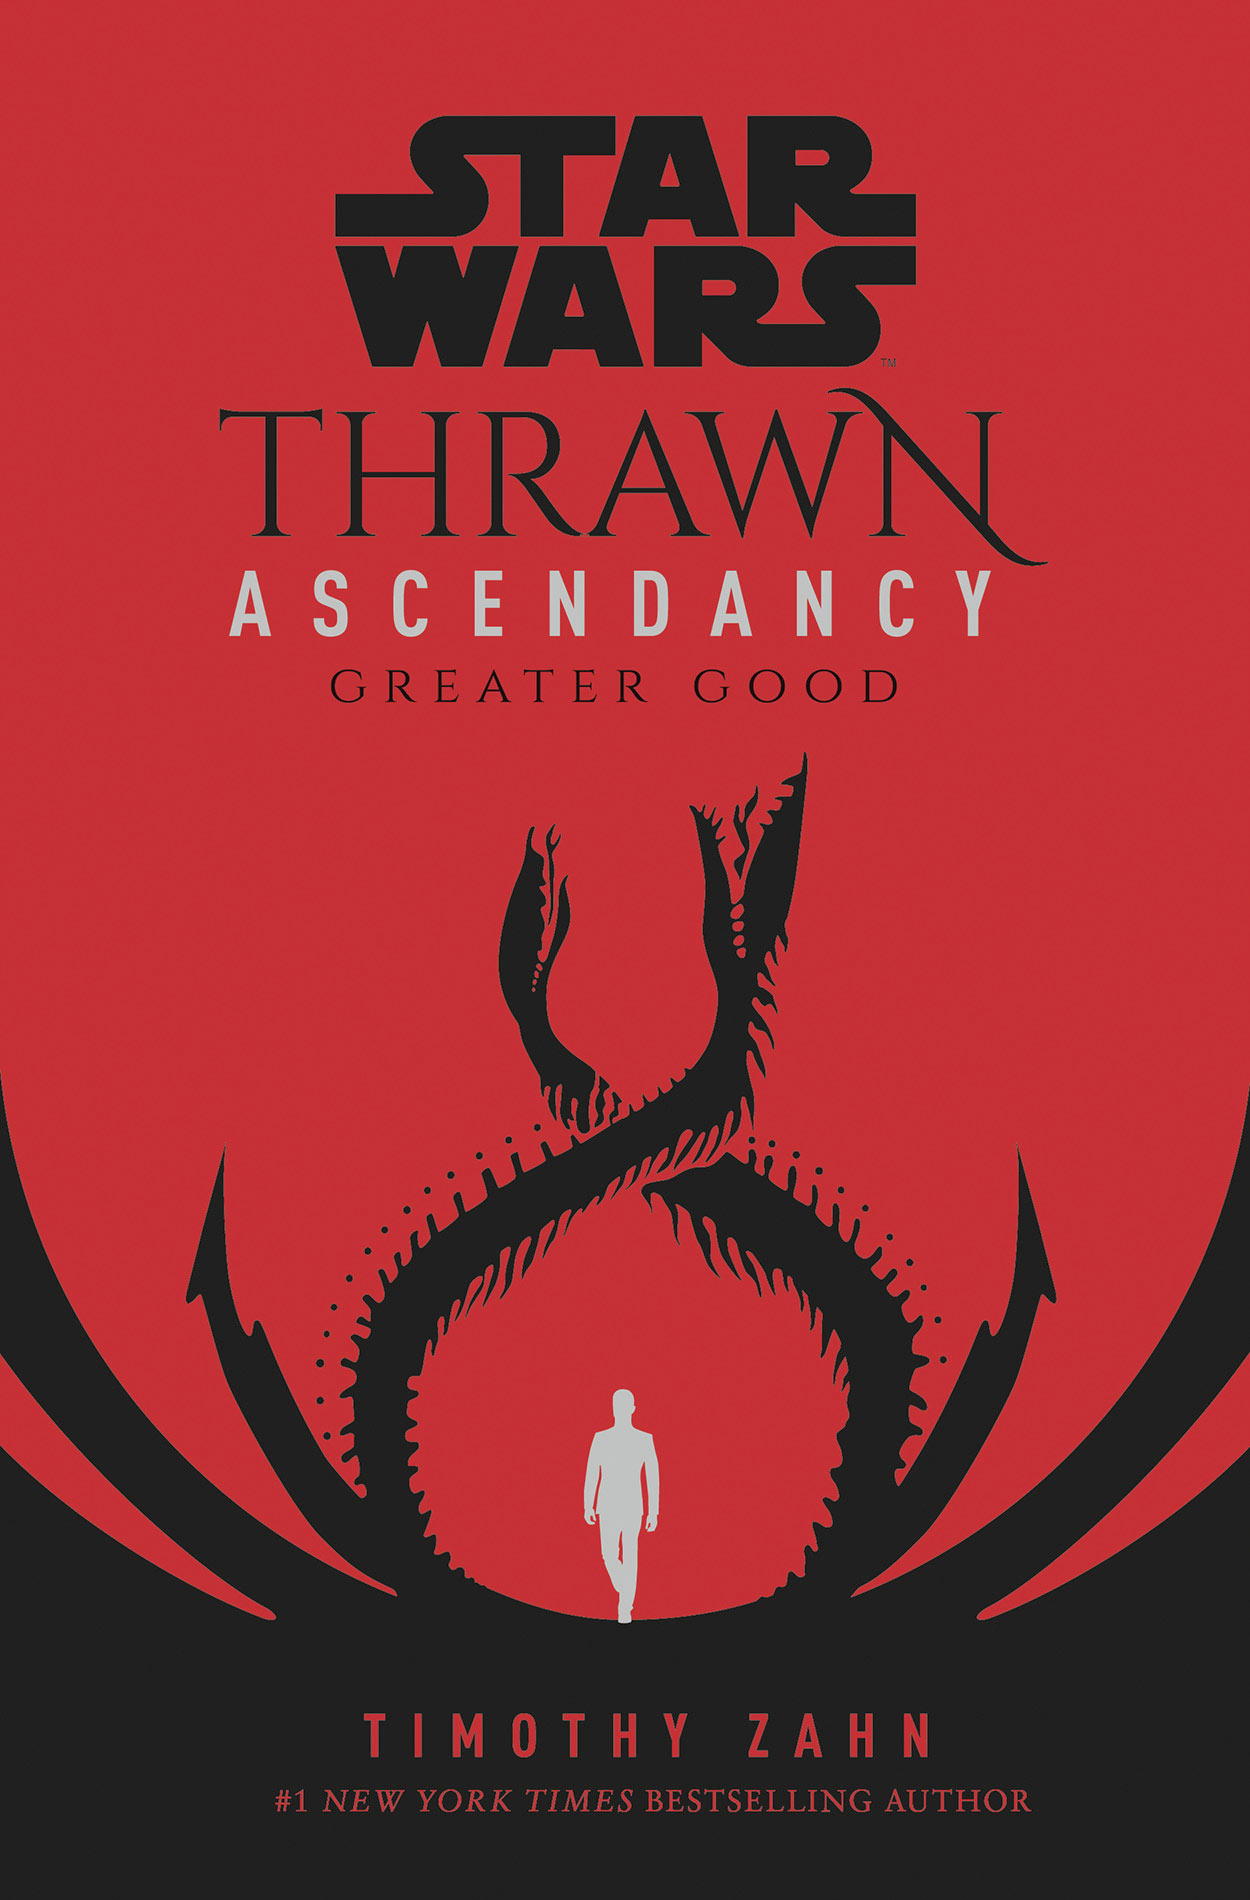 Star Wars Thrawn Ascendancy Greater Good cover